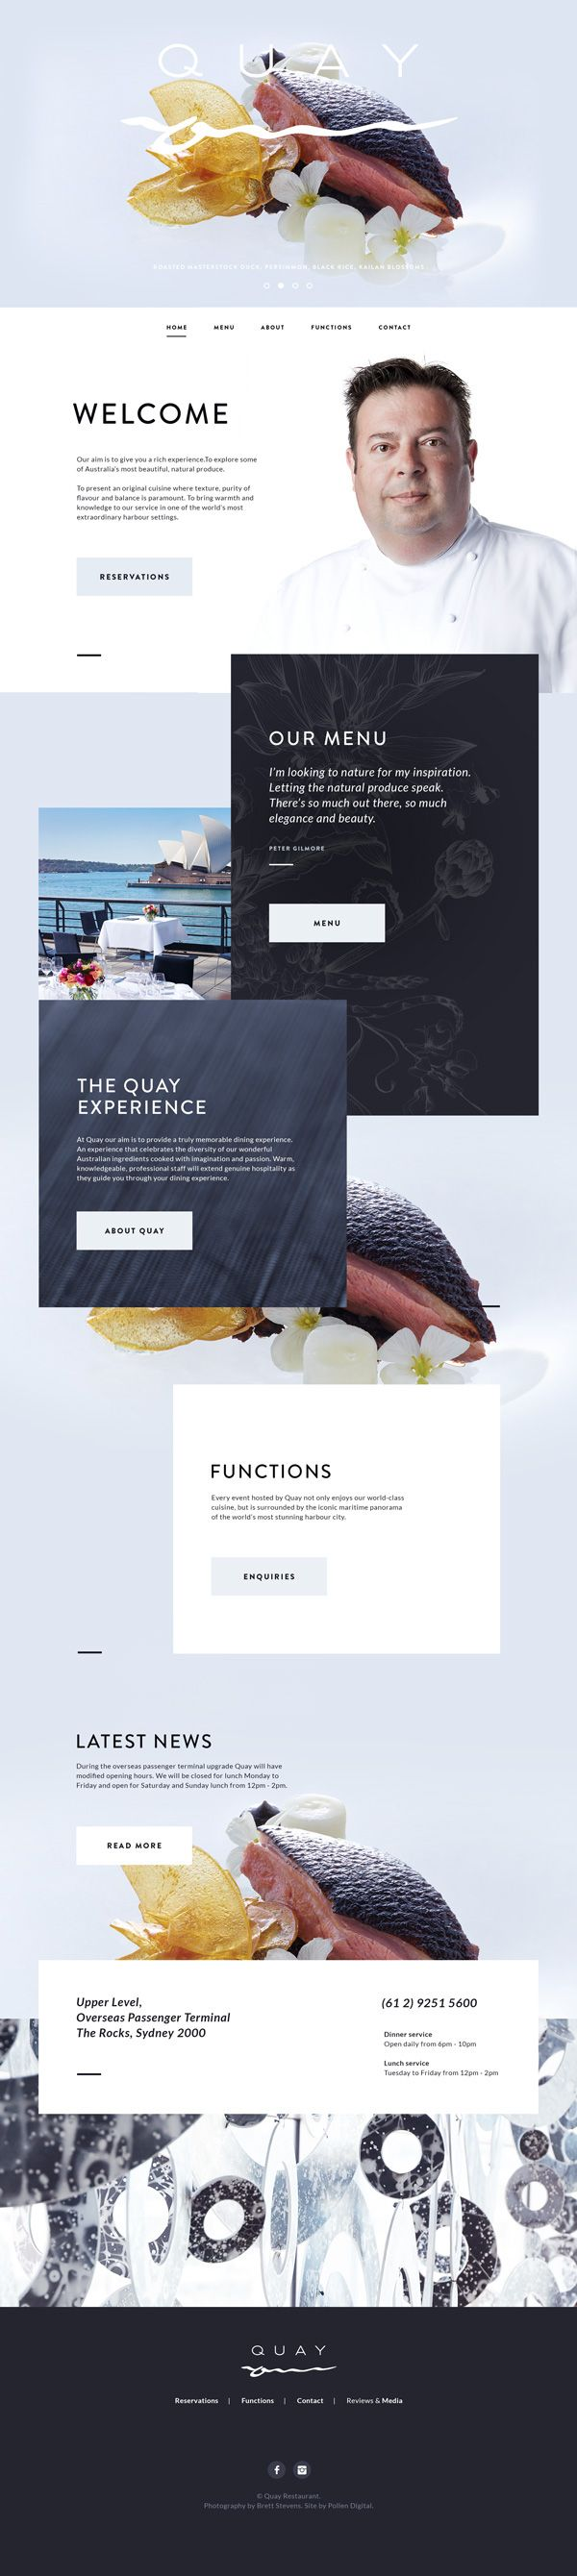 Quay Restaurant // Site Design on Behance